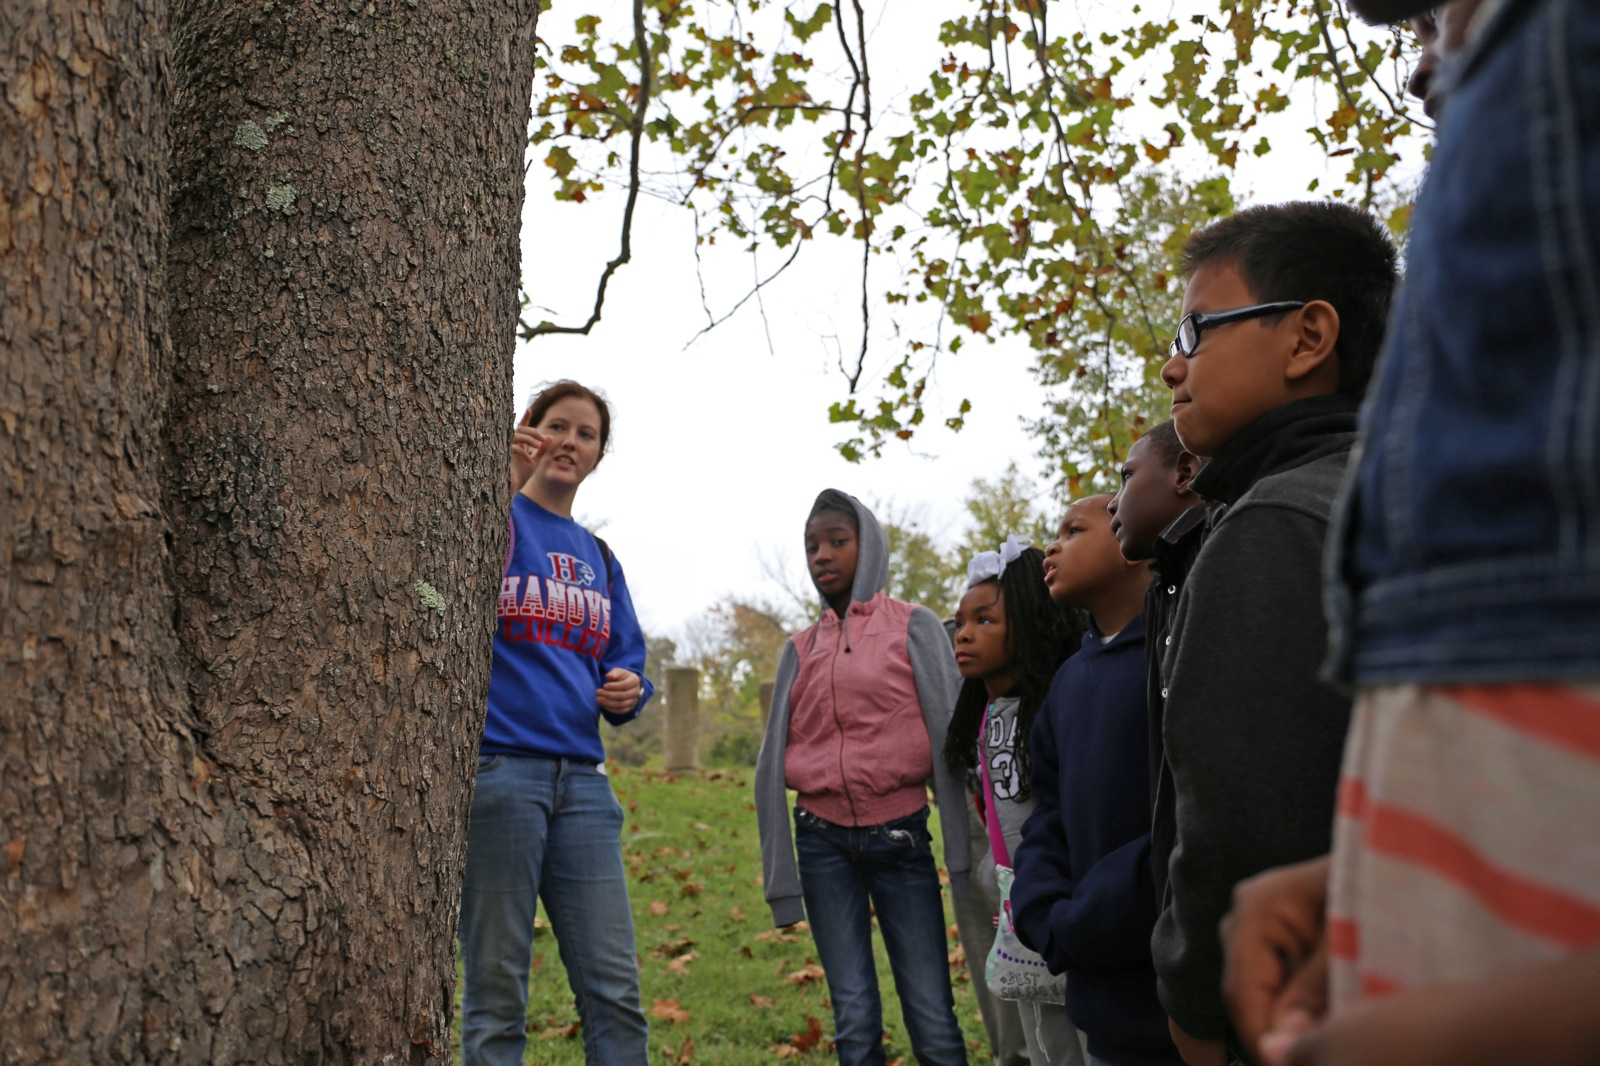 an instructor teaches 6 youth about different types of trees in their local park